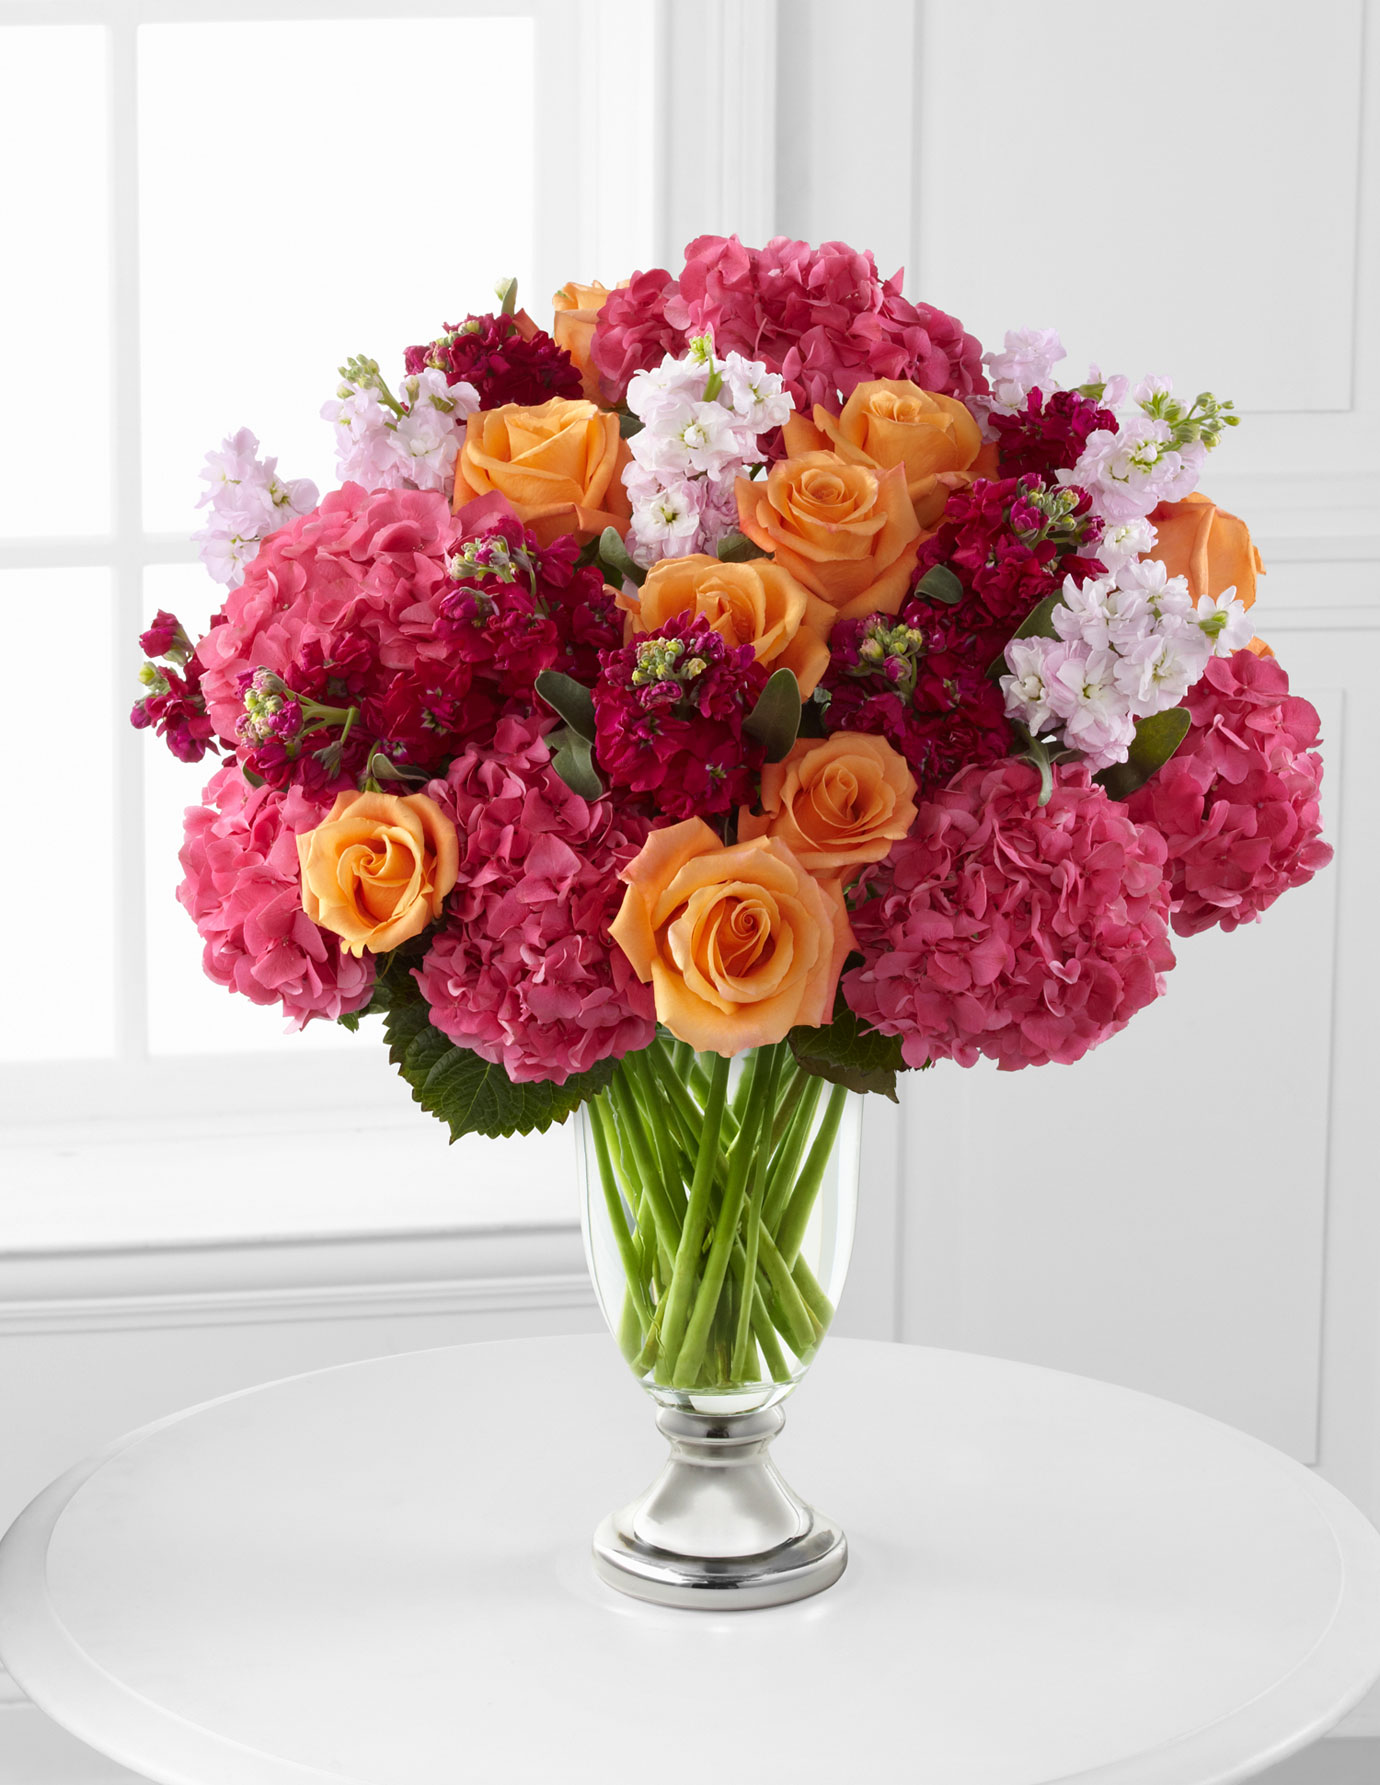 Valentine 39 s day flower ideas valentine 39 s day 2014 for Valentines day flower ideas